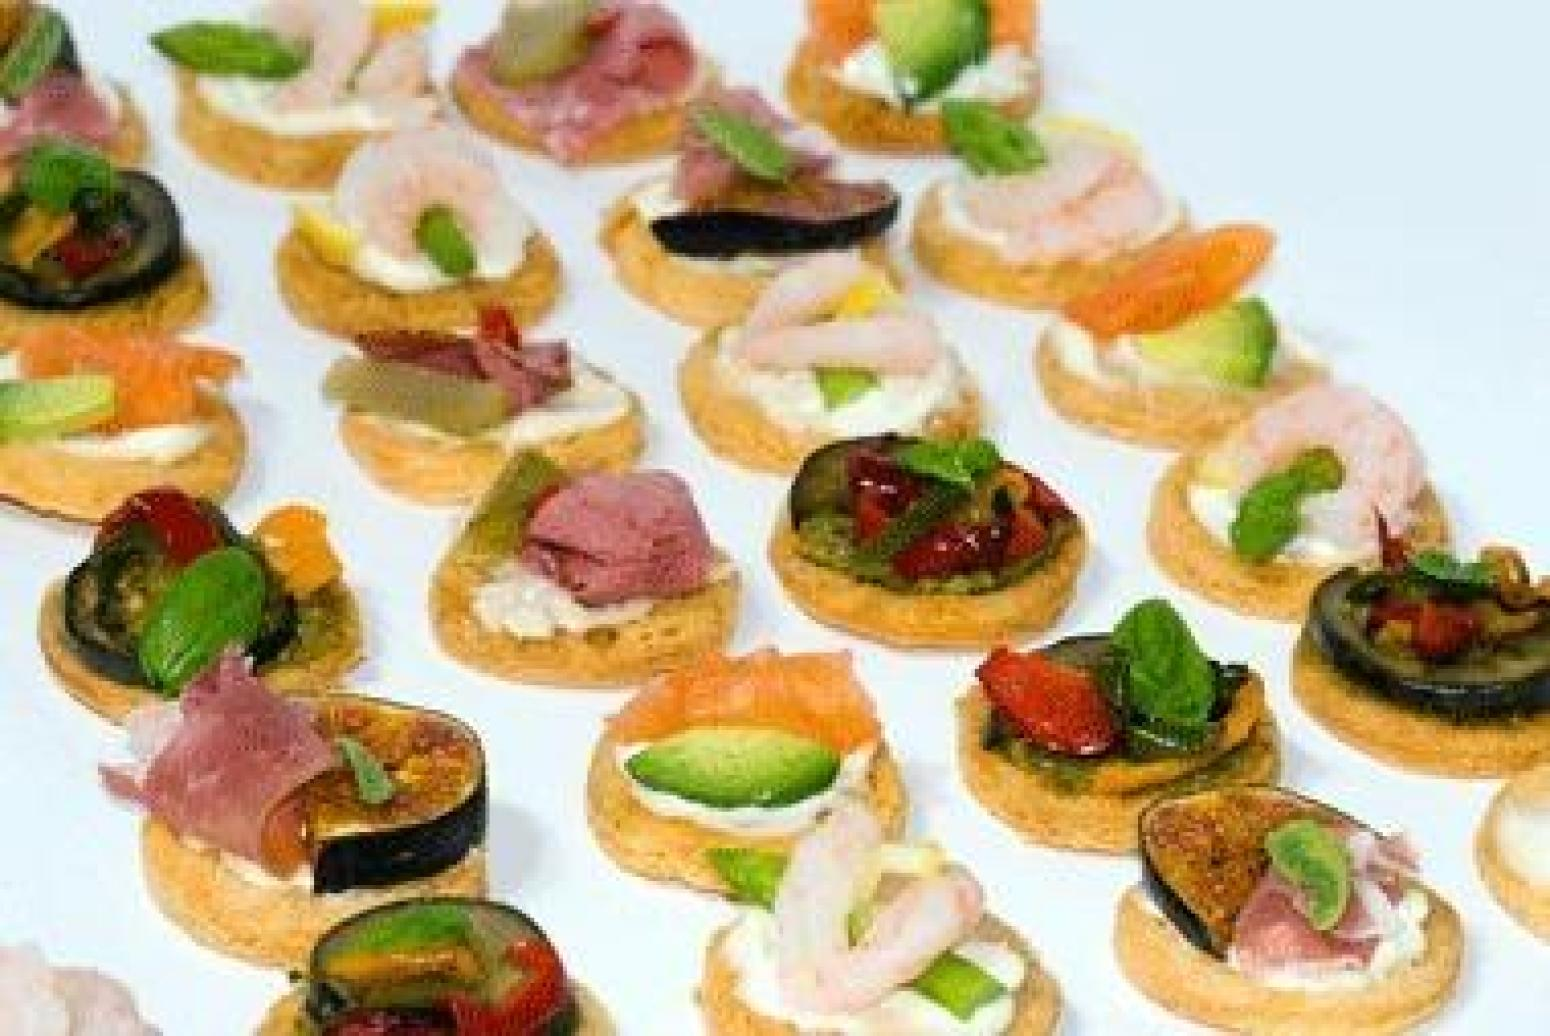 Canap s recipe 101 just a pinch recipes for Canape hors d oeuvres difference